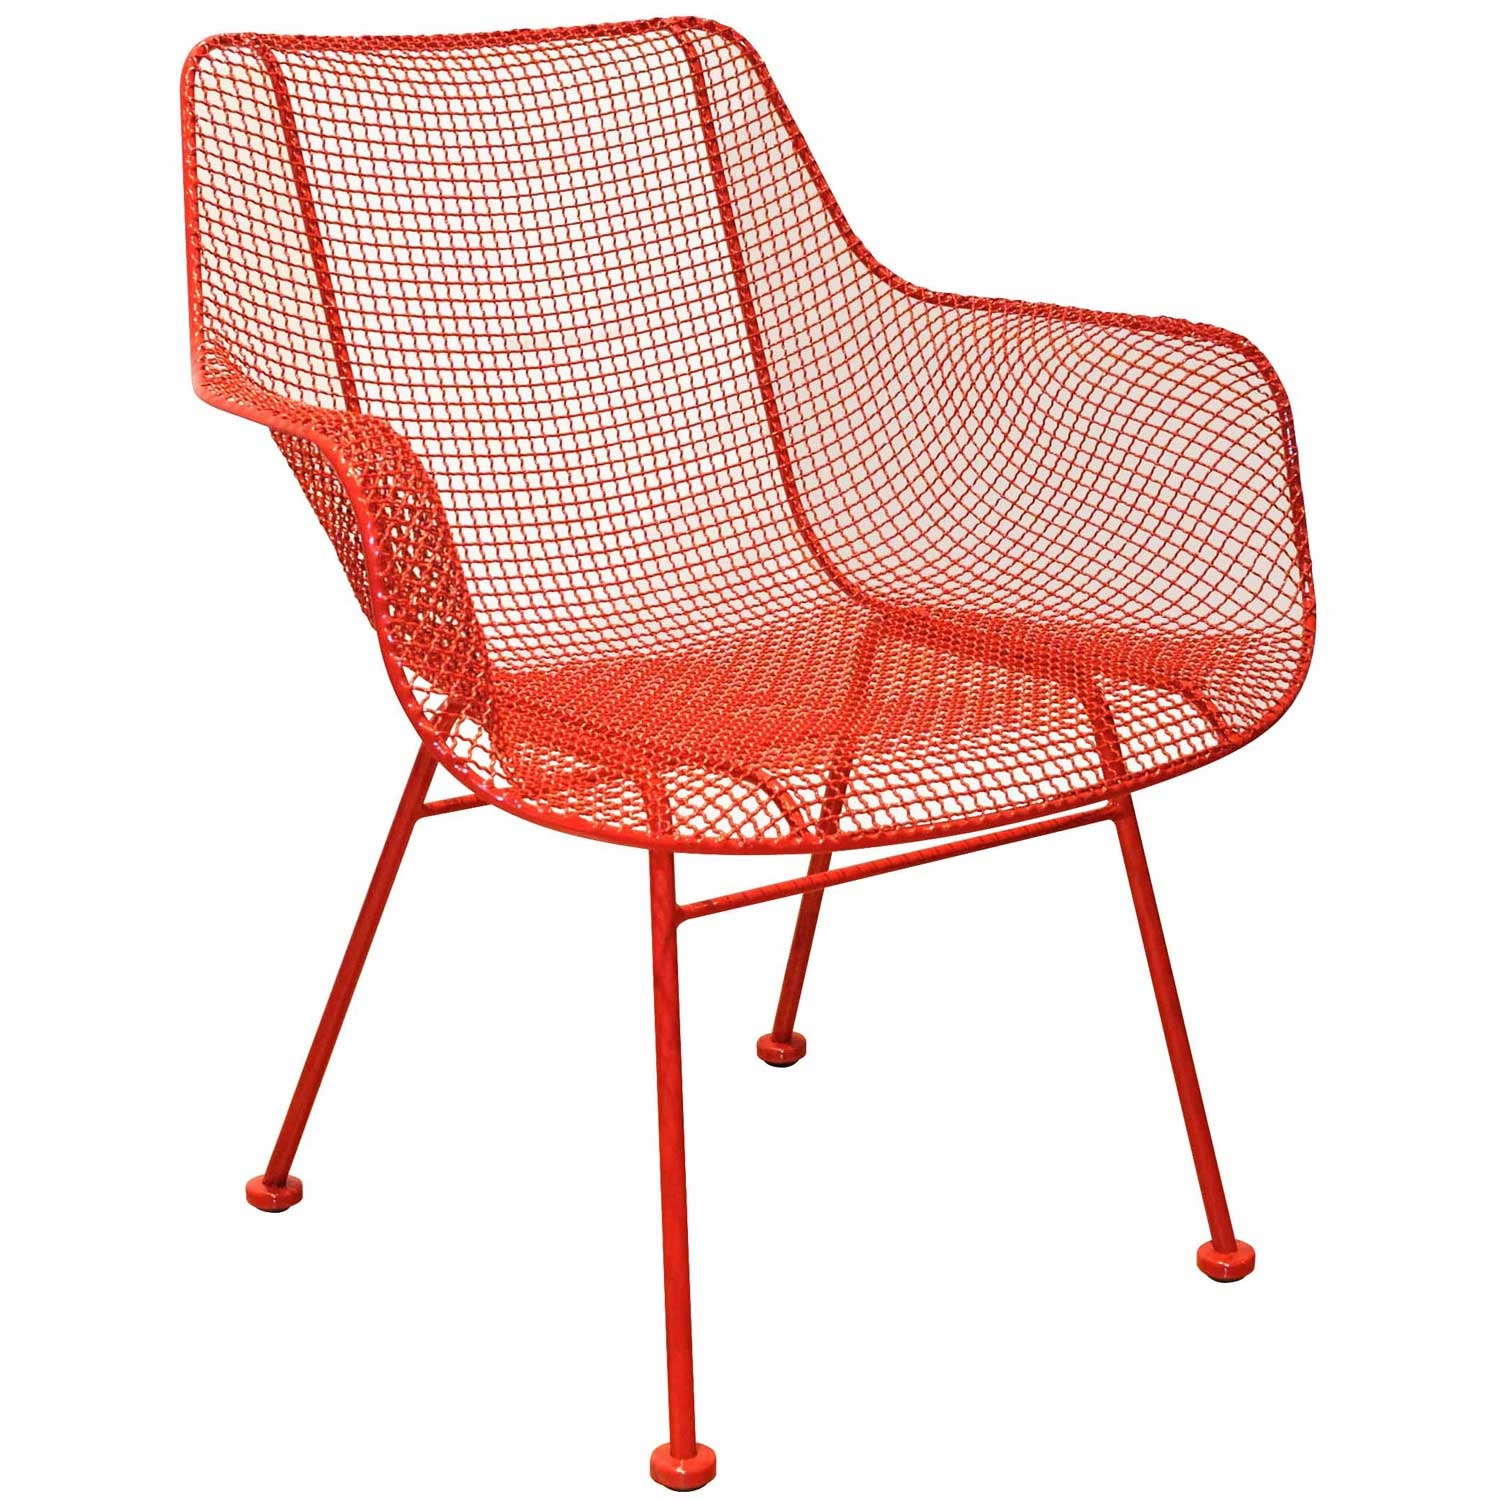 Sculptura outdoor occasional chair formed wire mesh seat